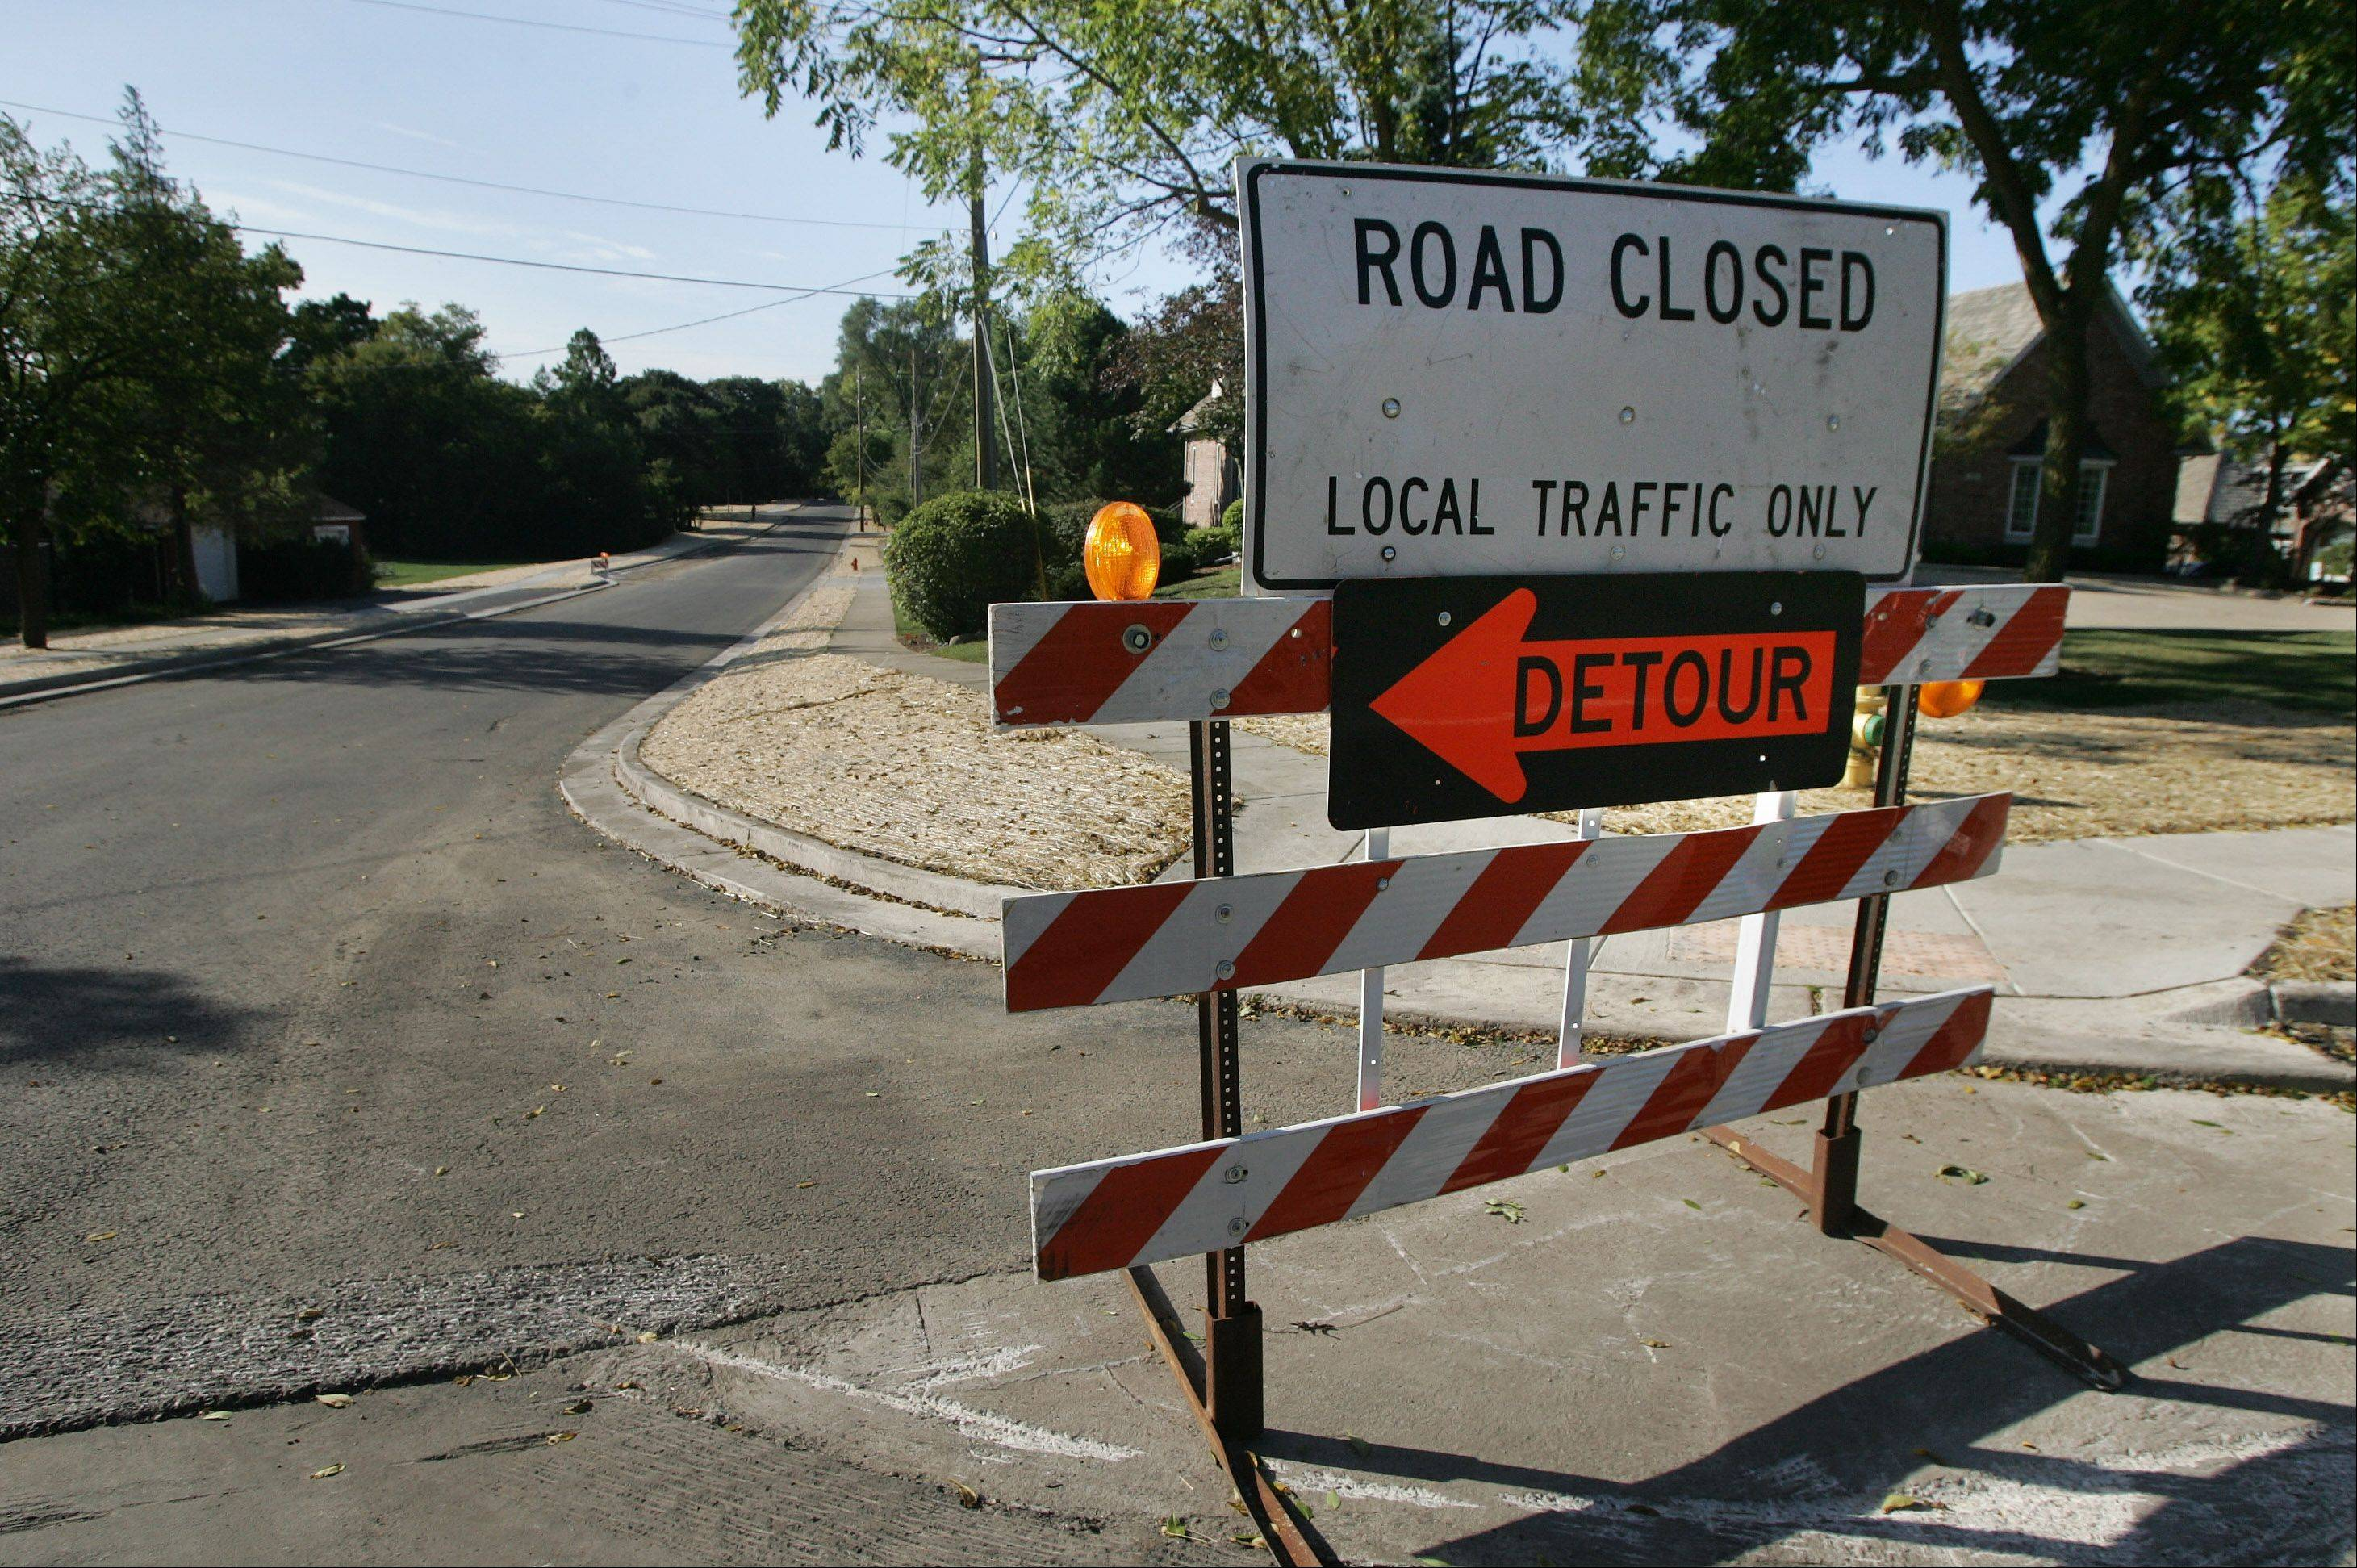 Voters in Libertyville could be asked on the March 20 ballot to allow the village to issue $25 million in bonds to catch up on a backlog of road repairs.